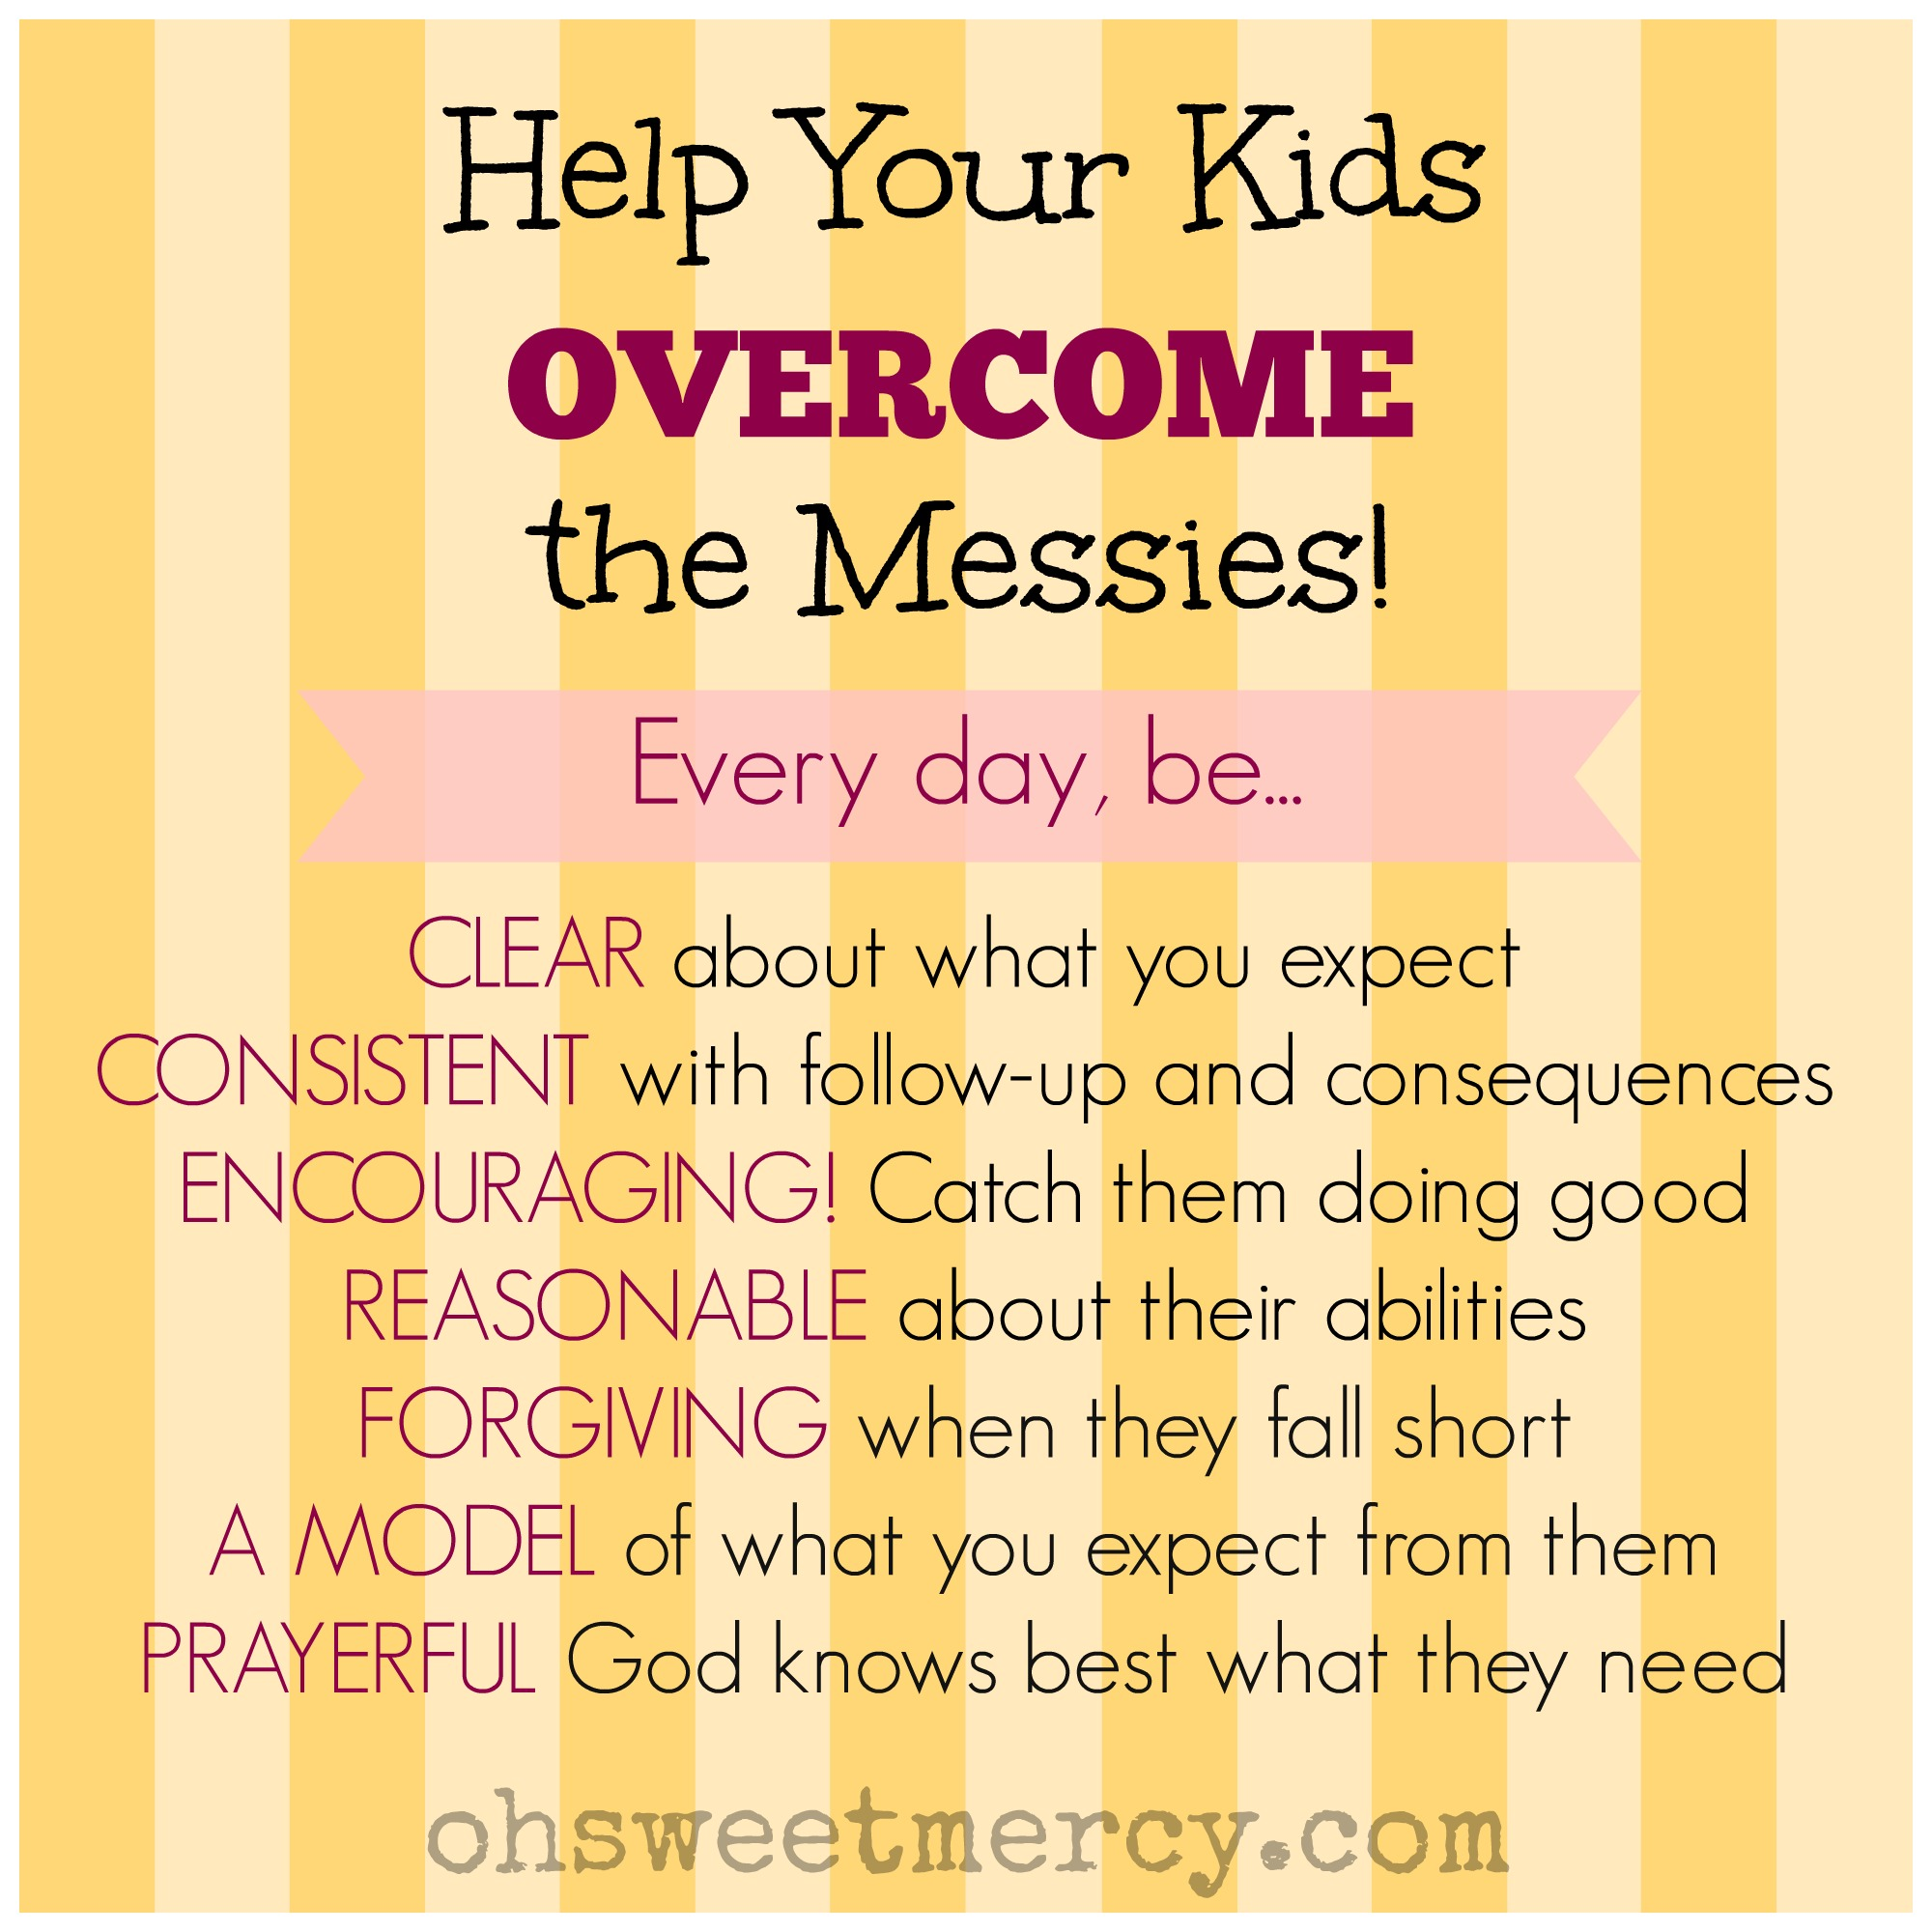 Help your kids overcome the messies